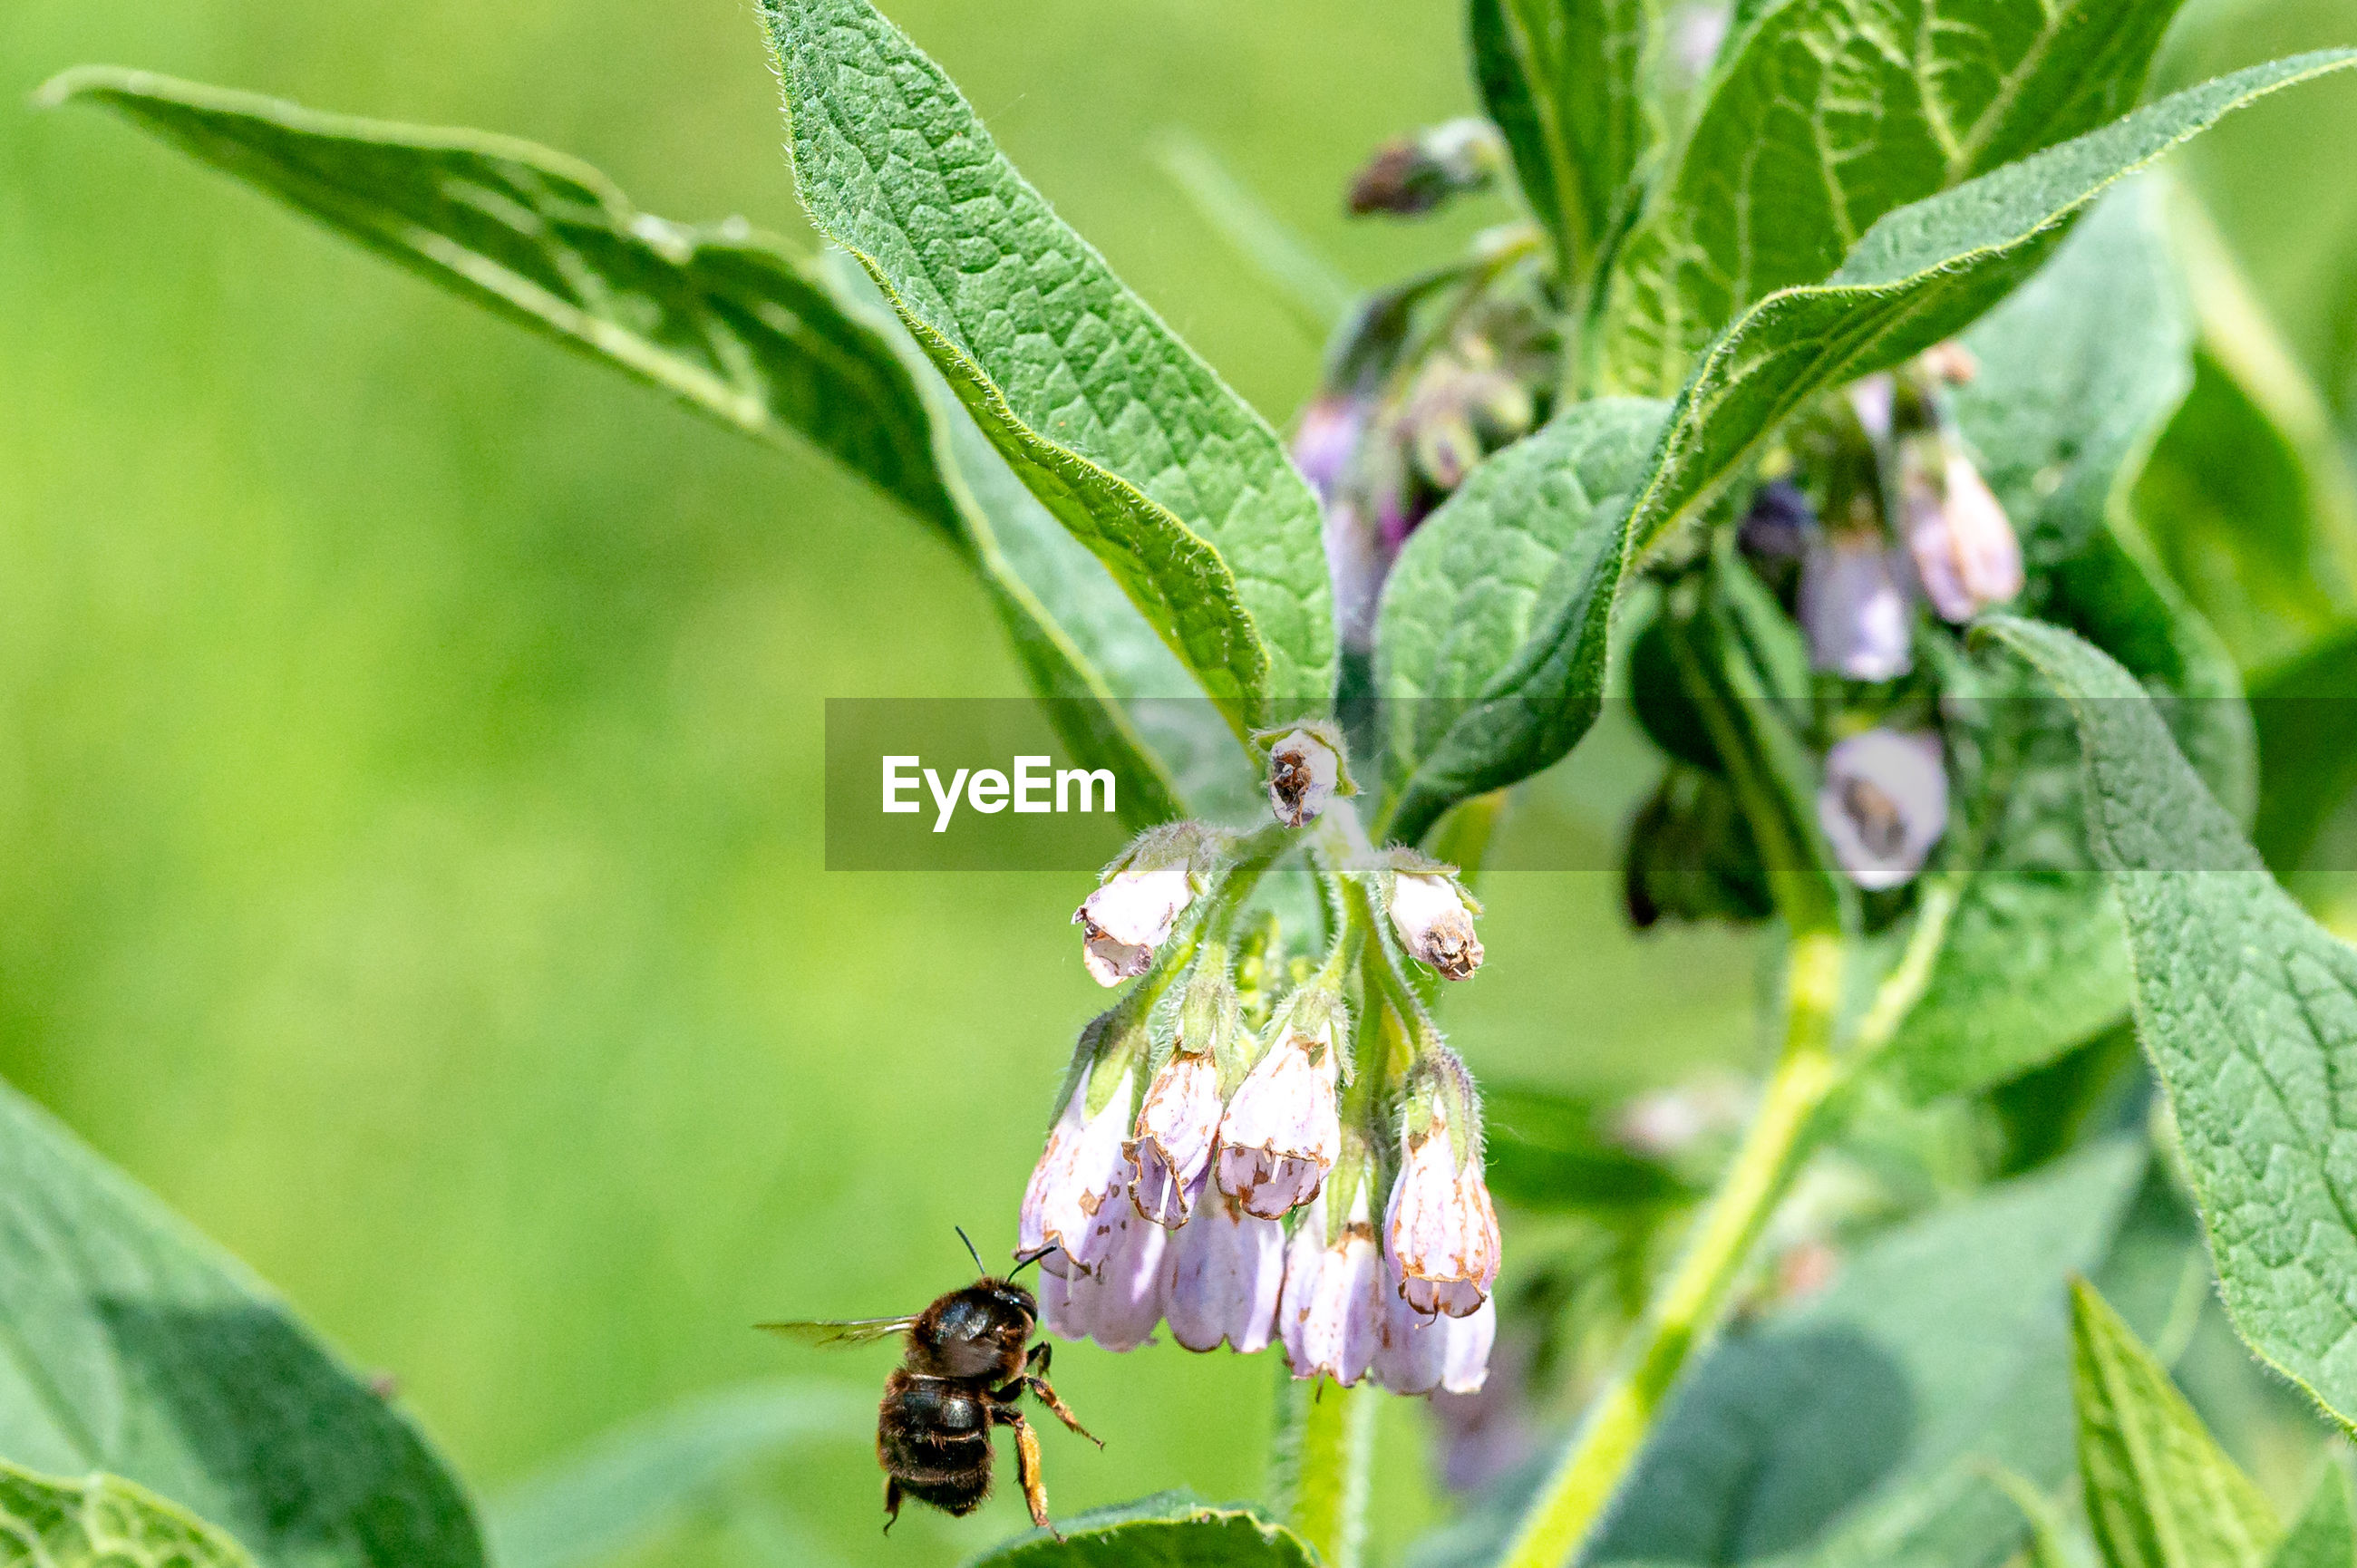 Female hairy-footed flower bee flying from flower to flower of the common or wild comfrey flower